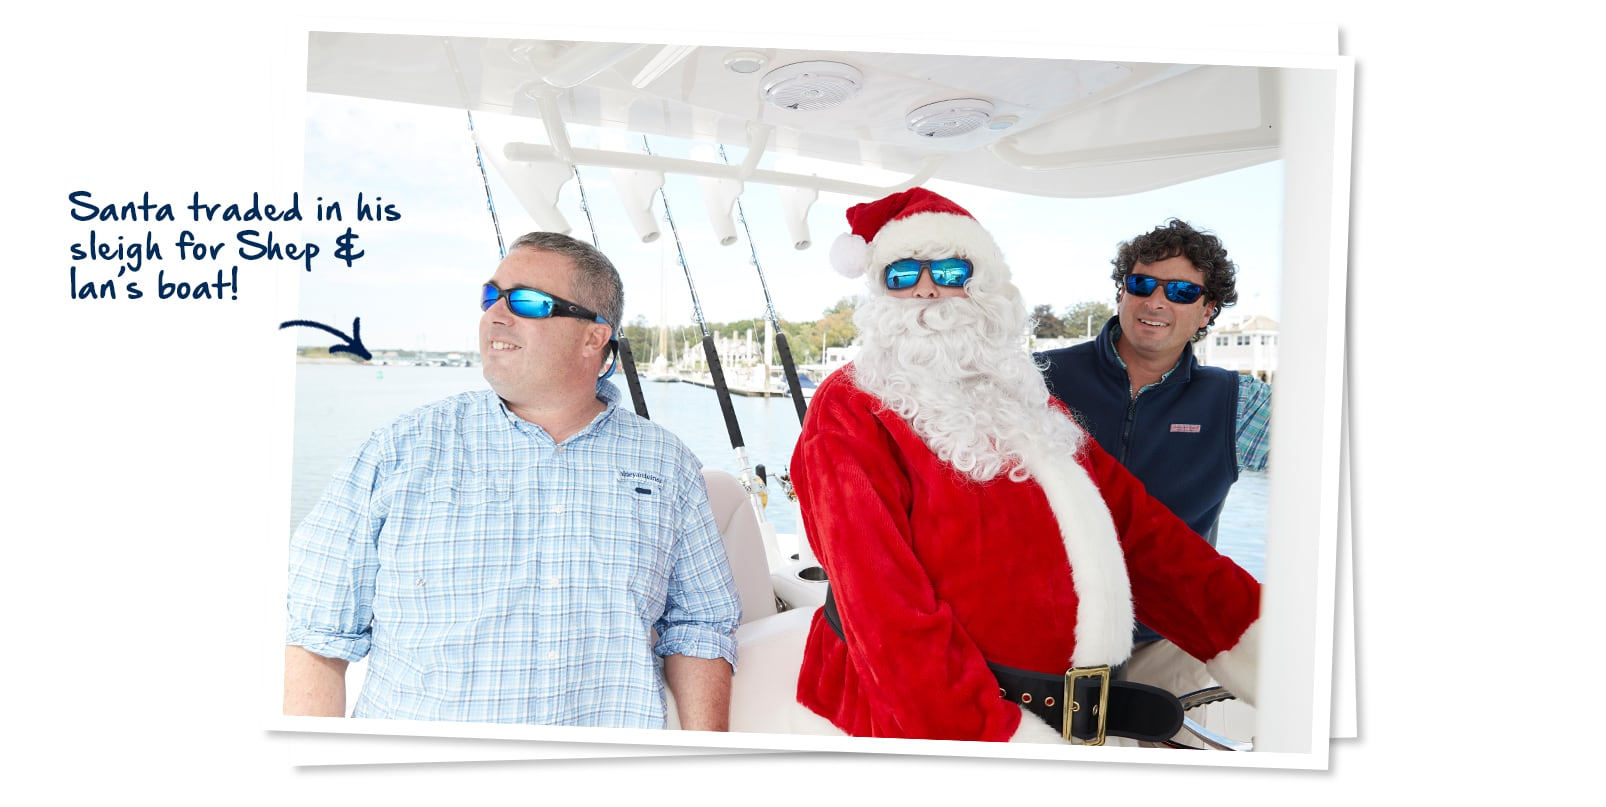 Santa traded in his sleigh for Shep & Ian's boat!